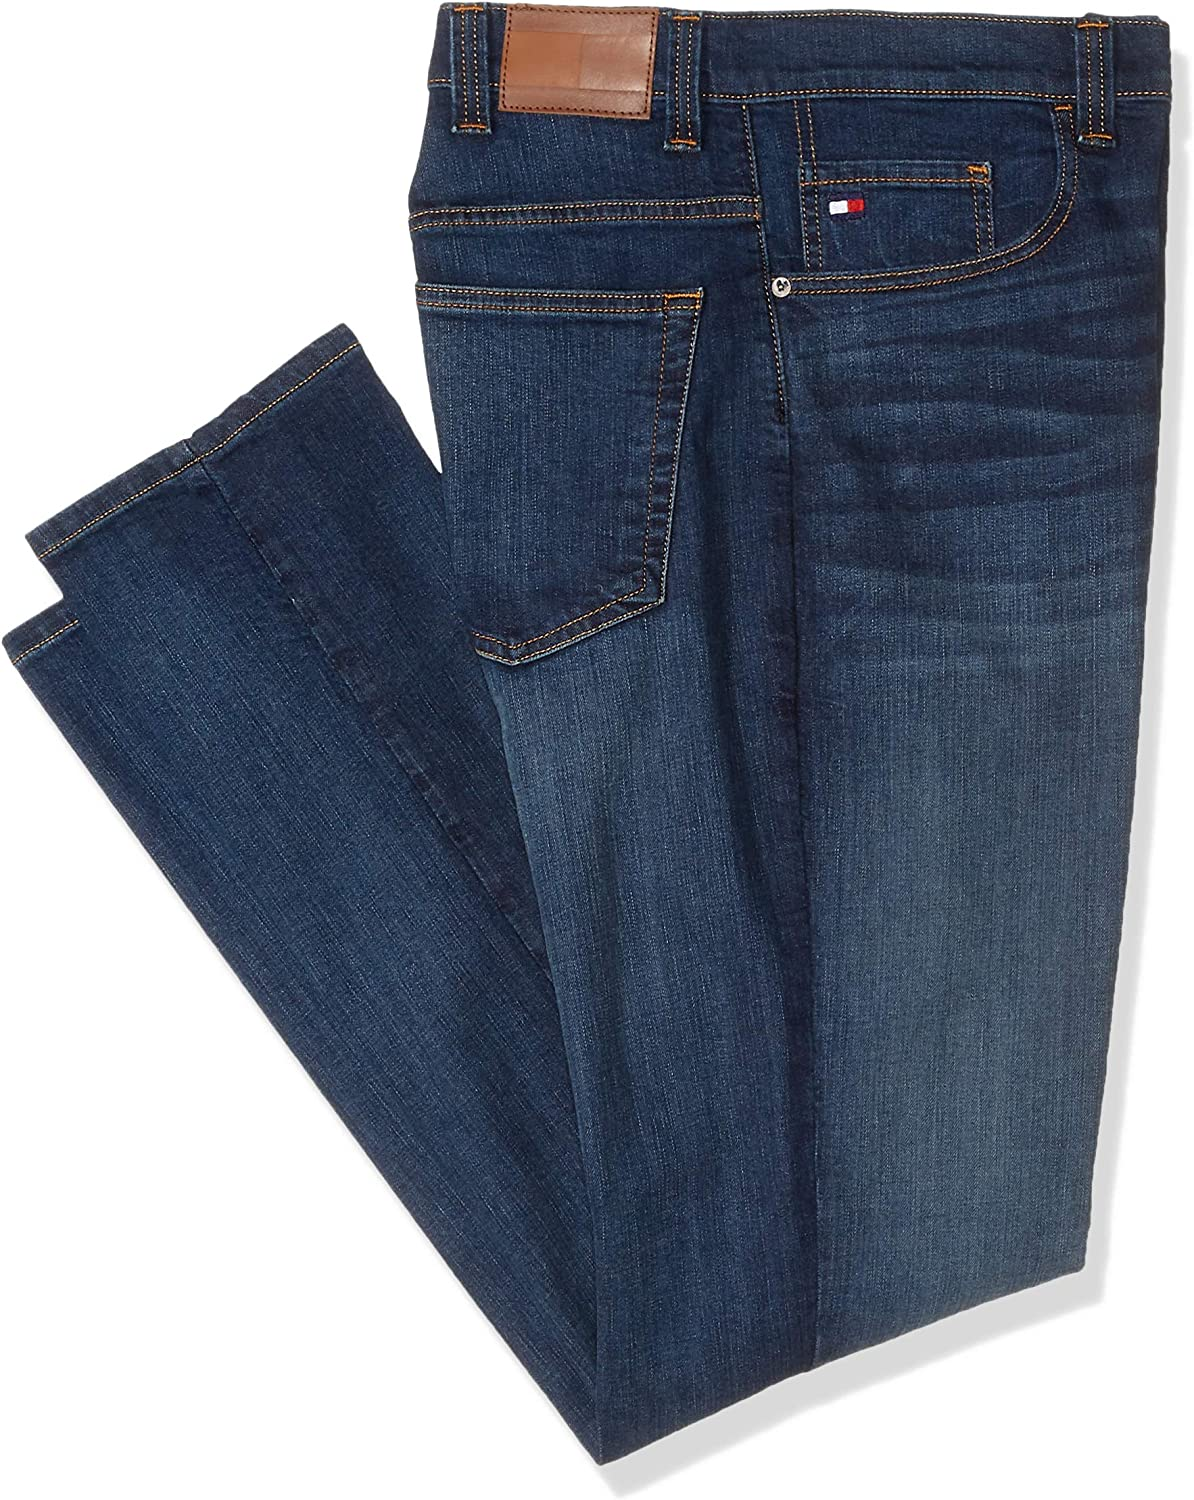 Tommy Hilfiger Men S Big Tall Big And Tall Jeans Relaxed Fit At Amazon Men S Clothing Store